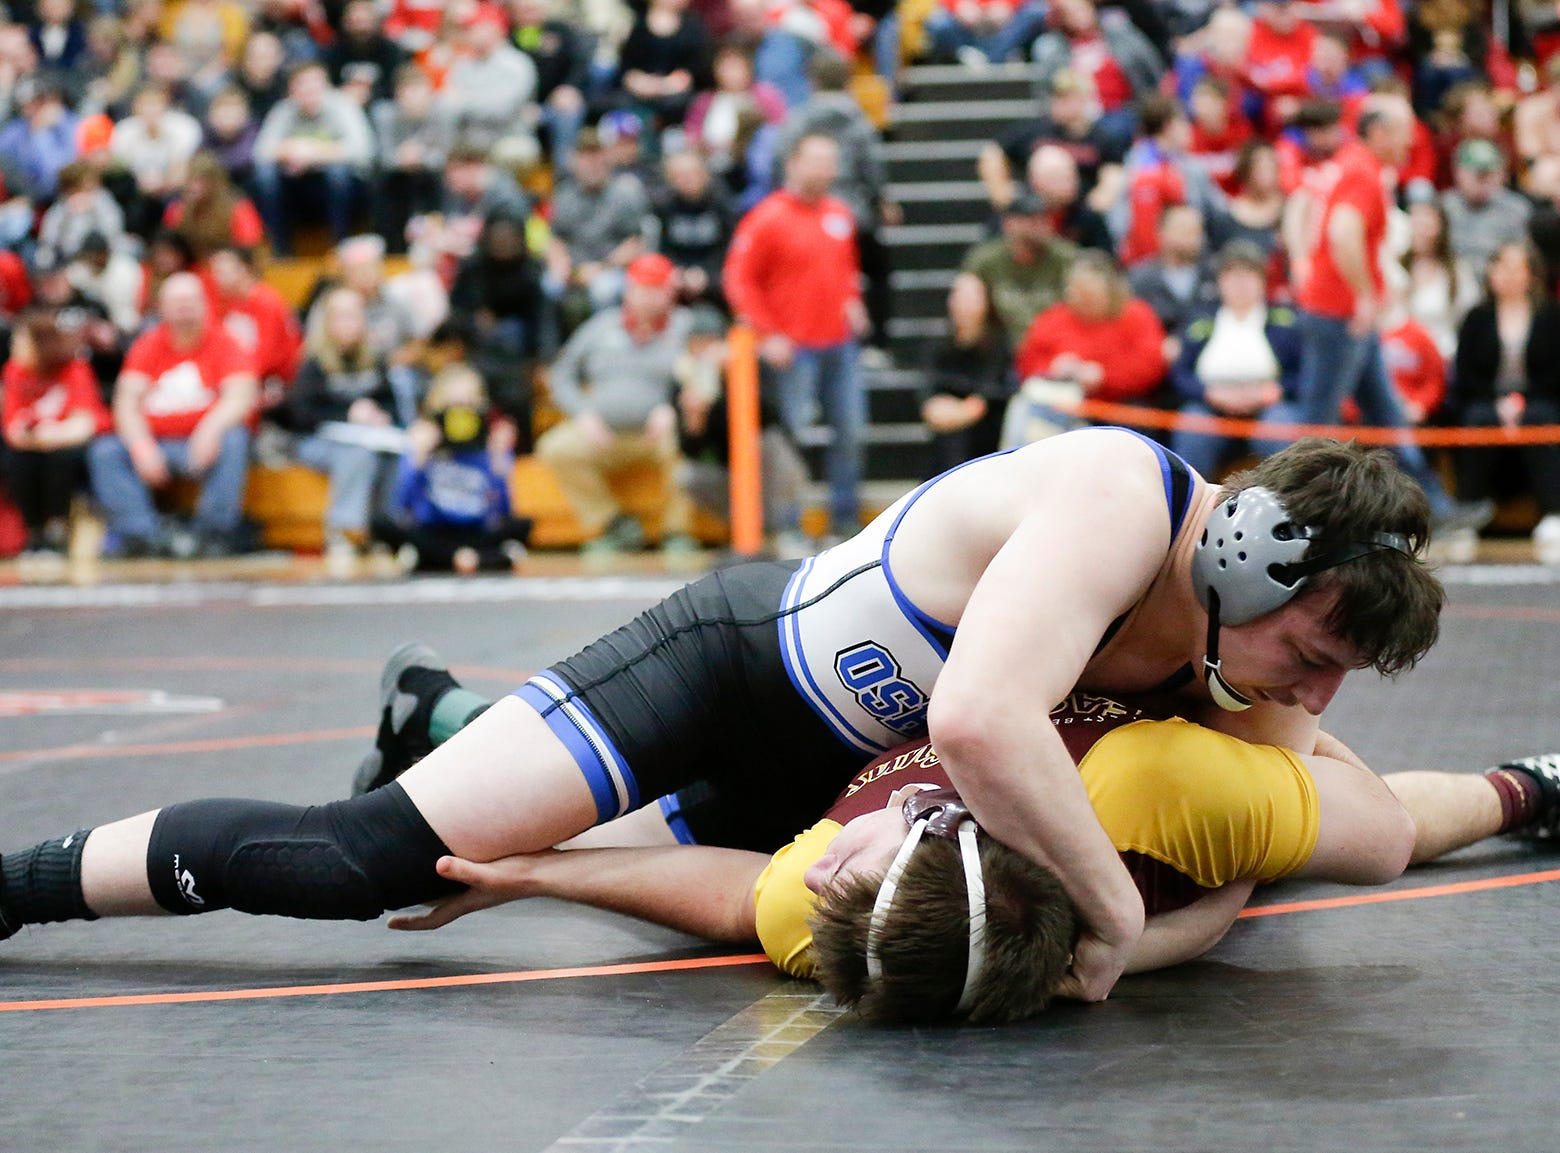 Kevin Loos of Oshkosh West High School wrestles Evan Smith of West Bend East High School in the 195 pound weight class during the WIAA sectionals Saturday, February 16, 2019 in Hartford, Wis. Loos won with a pin. Doug Raflik/USA TODAY NETWORK-Wisconsin